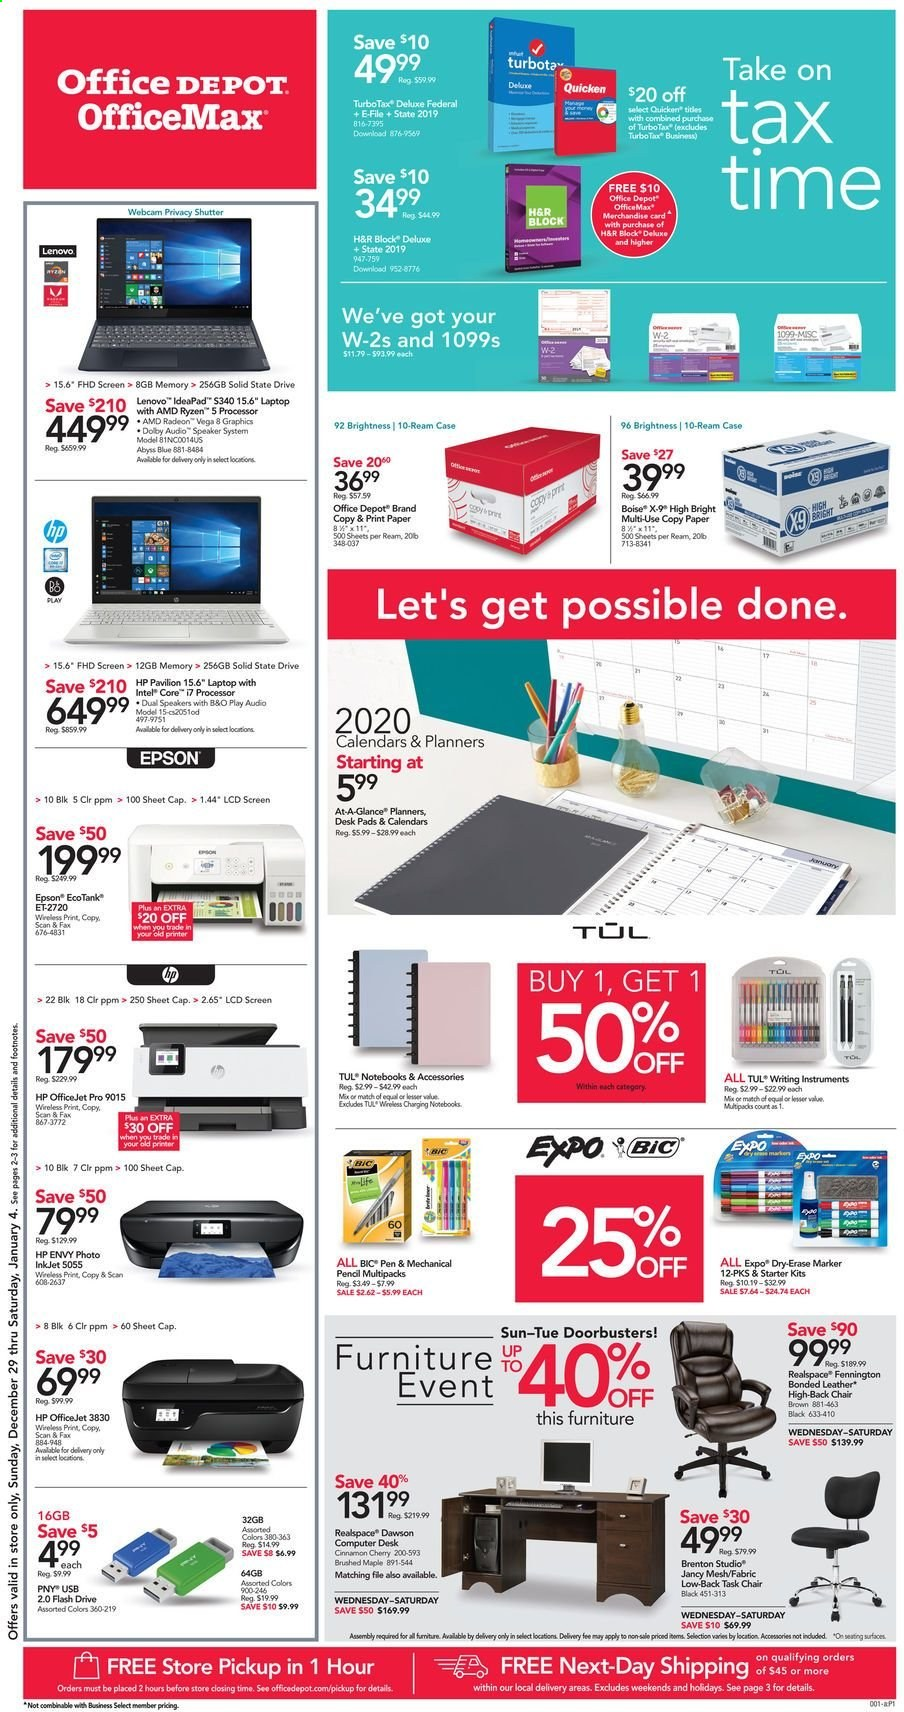 Office DEPOT Flyer  - 12.29.2019 - 01.04.2020. Page 1.